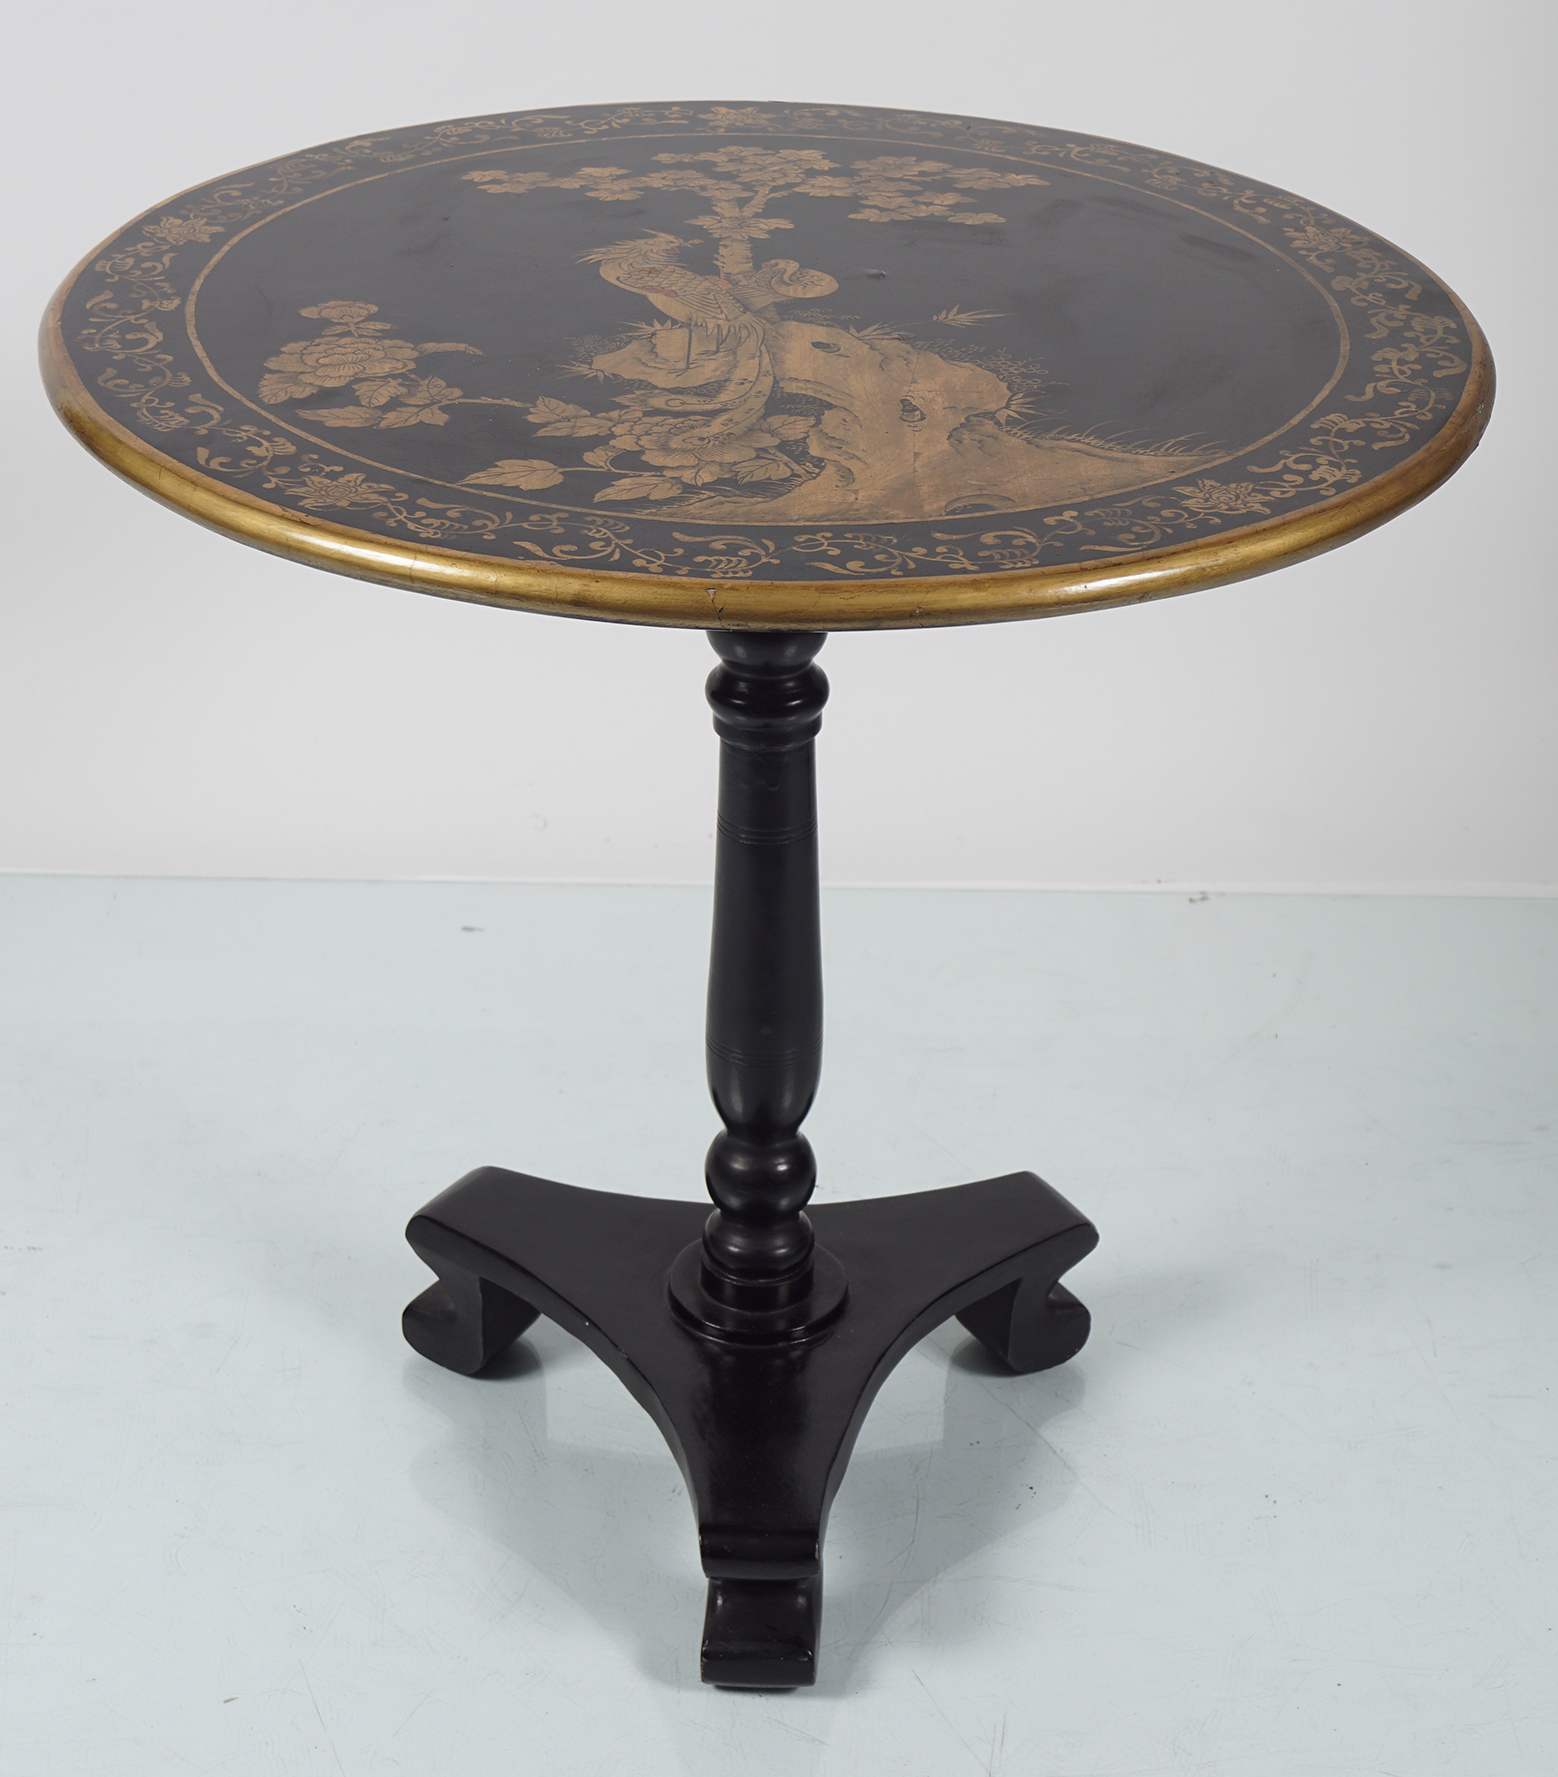 CHINESE LACQUERED LOW TABLE - Image 2 of 4